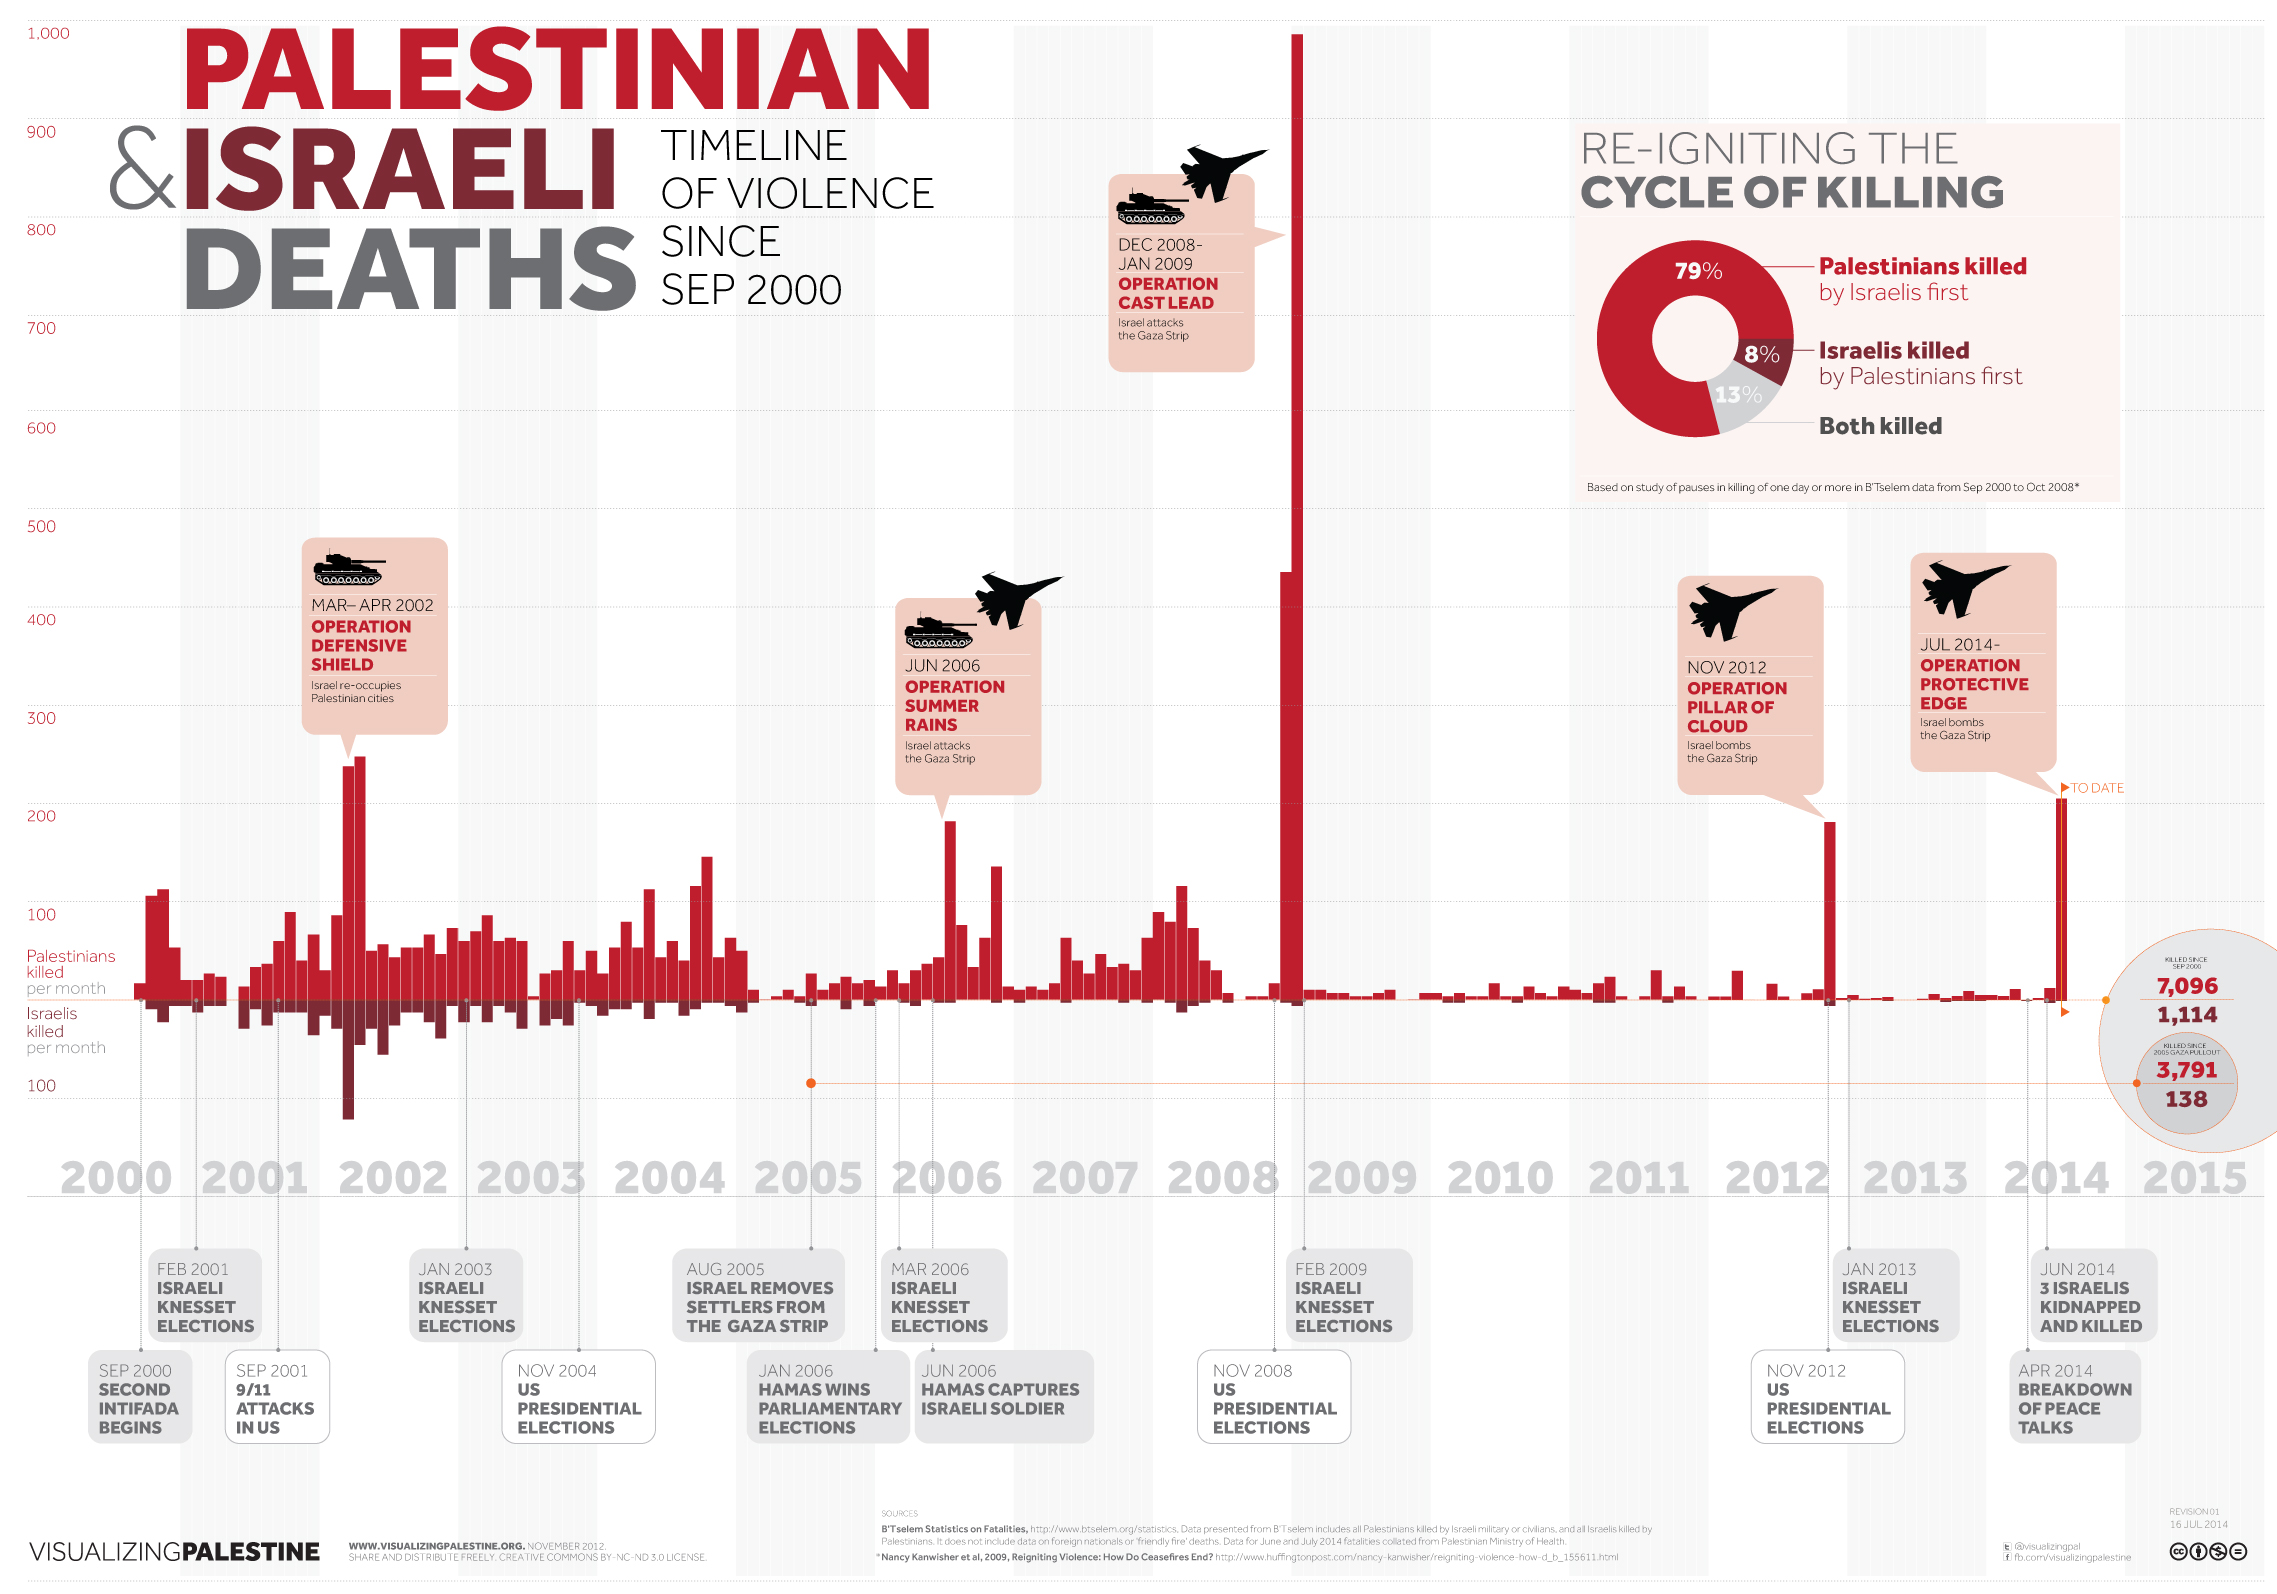 Palestinian and Israeli Deaths: Timeline of Violence Since September 2000